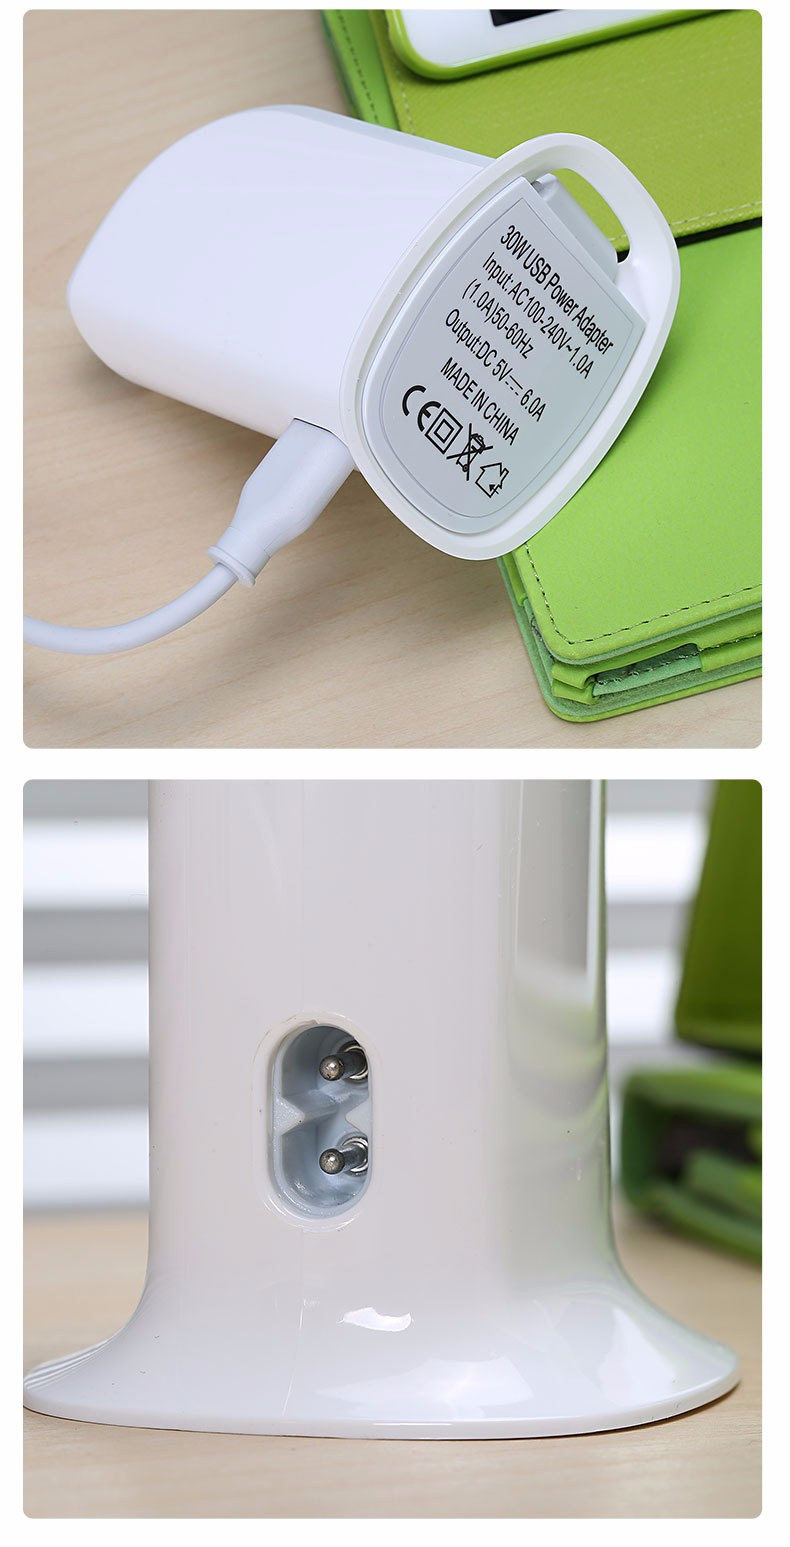 6 USB FAST CHARGER ADAPTER (3)